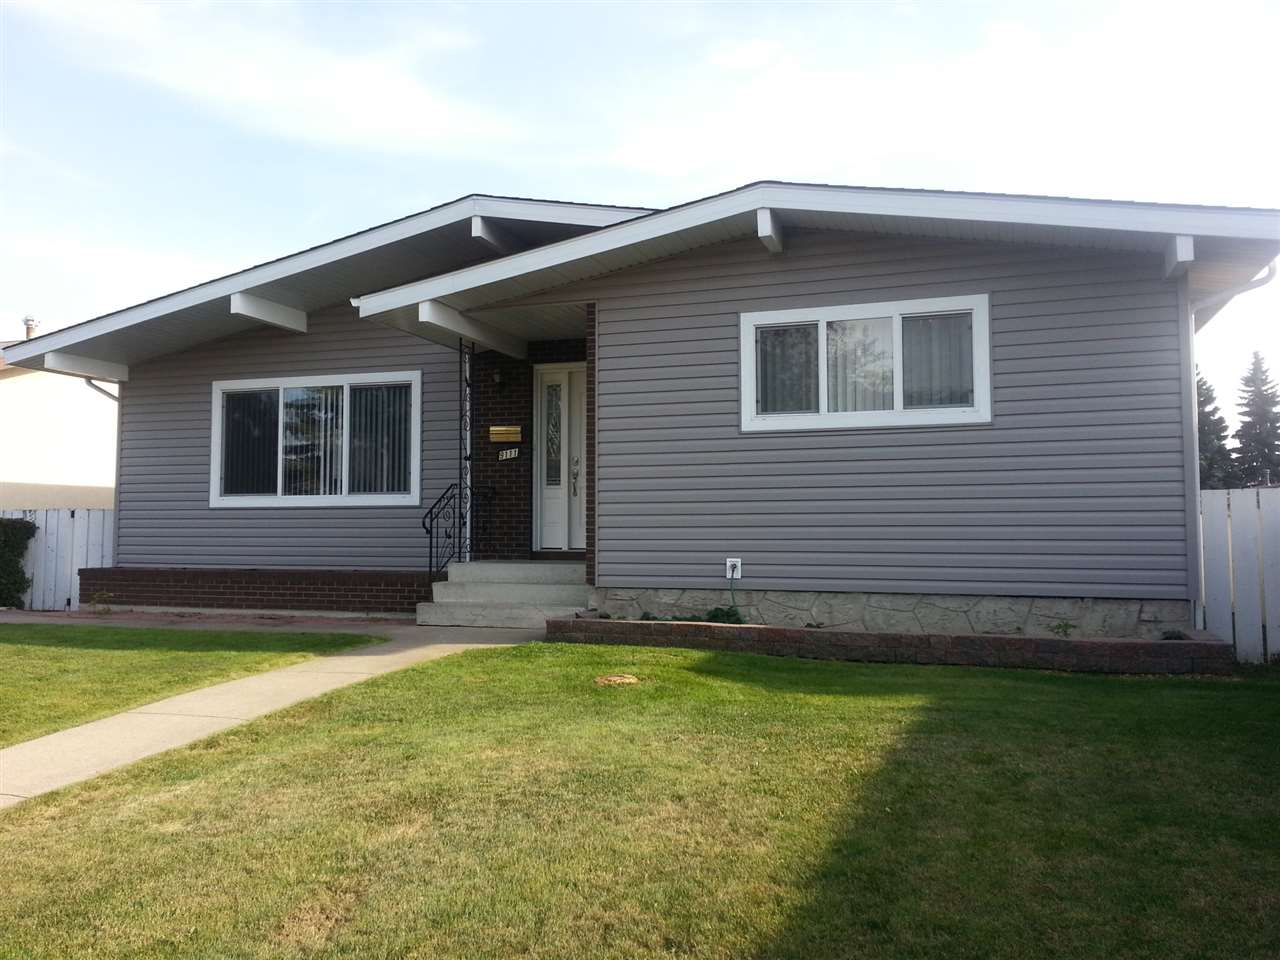 Main Photo: 9111 152 Avenue in Edmonton: Zone 02 House for sale : MLS® # E4078480